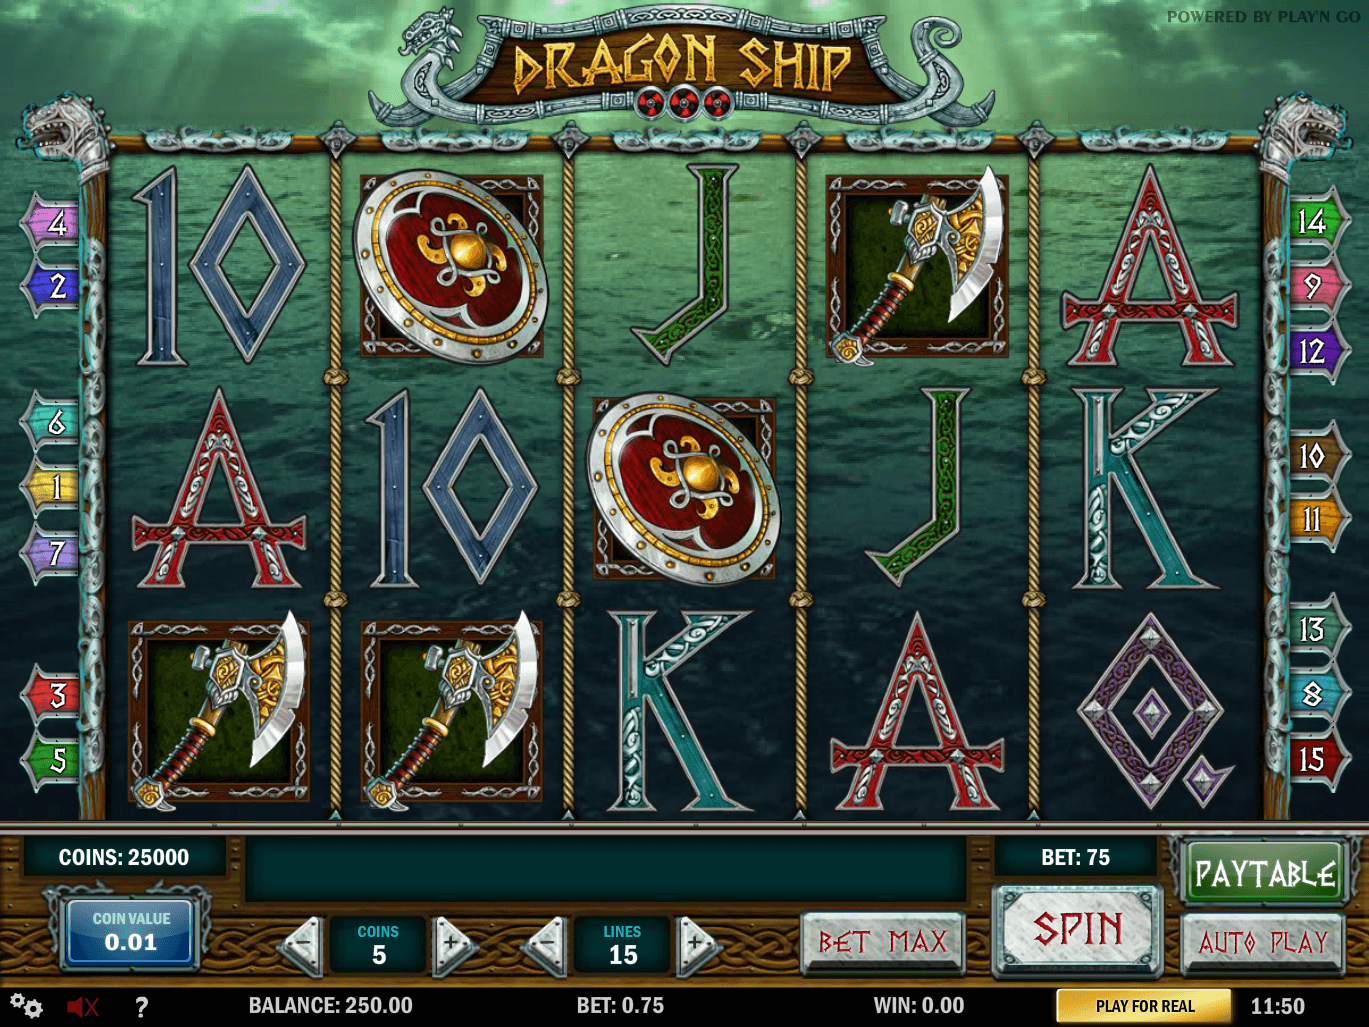 Dragon Ship Slots by Playn GO - Try these Games for Free